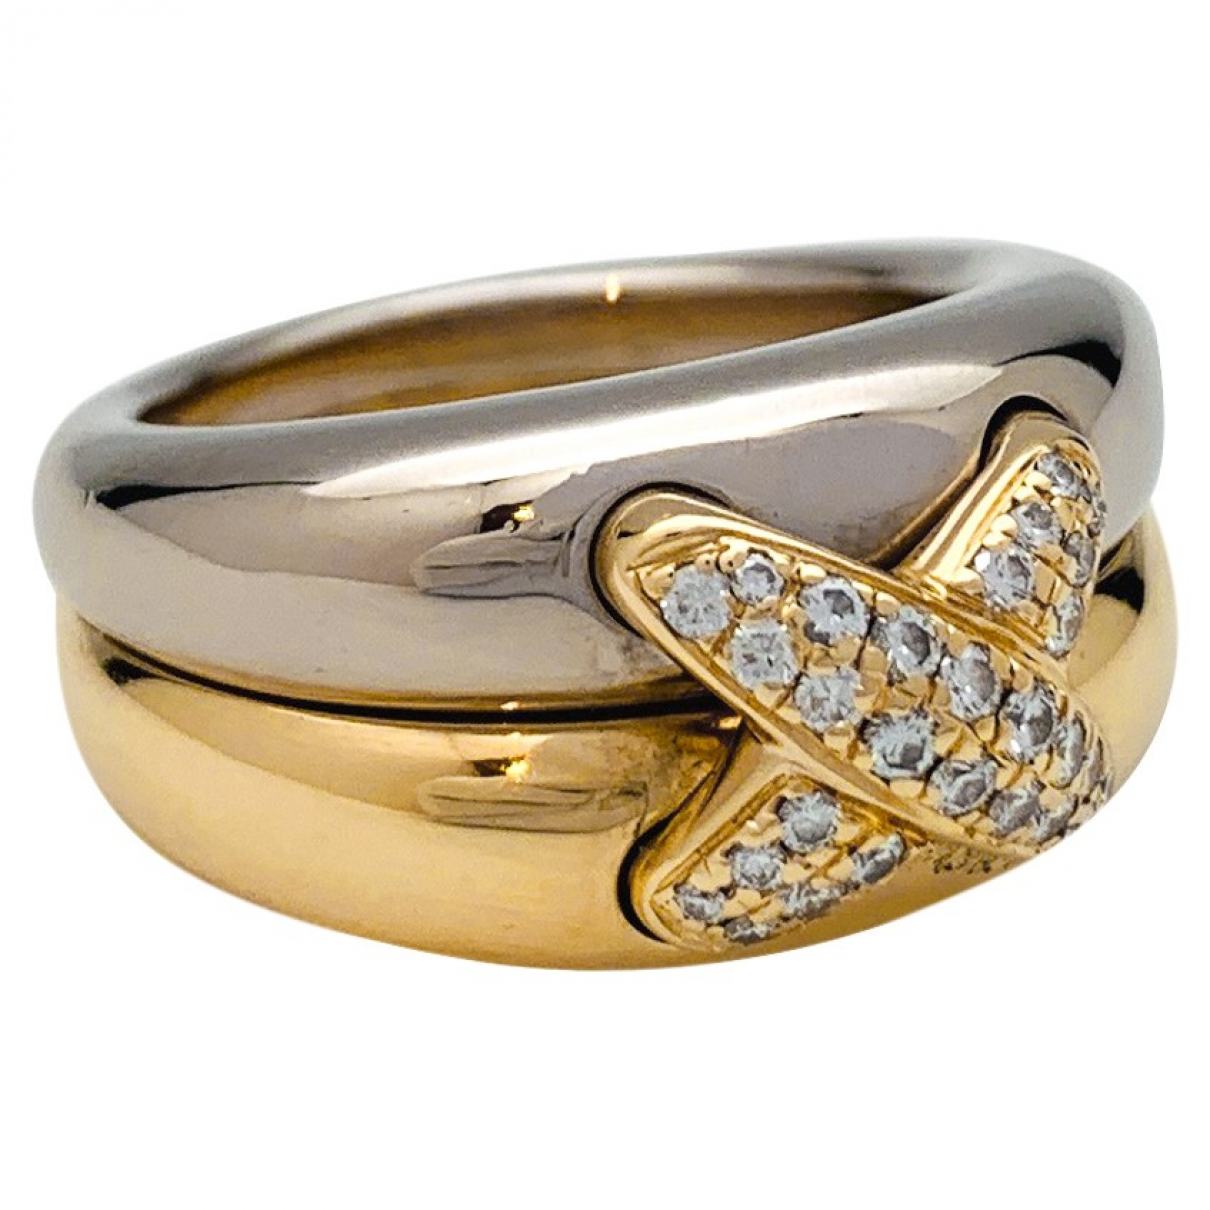 Chaumet Liens Ring in Weissgold